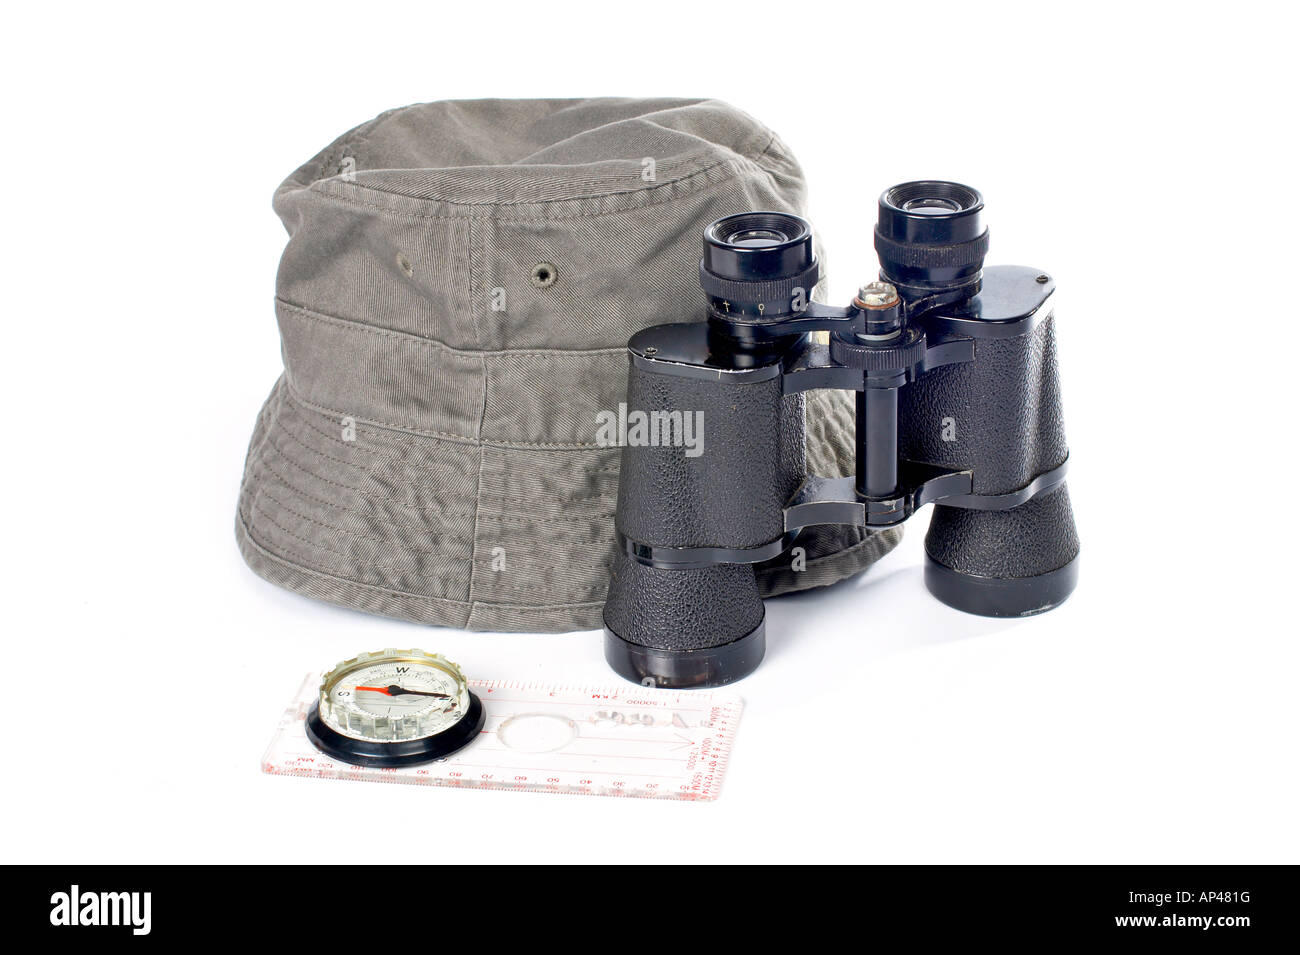 Hat compass and binoculars on a white background - Stock Image